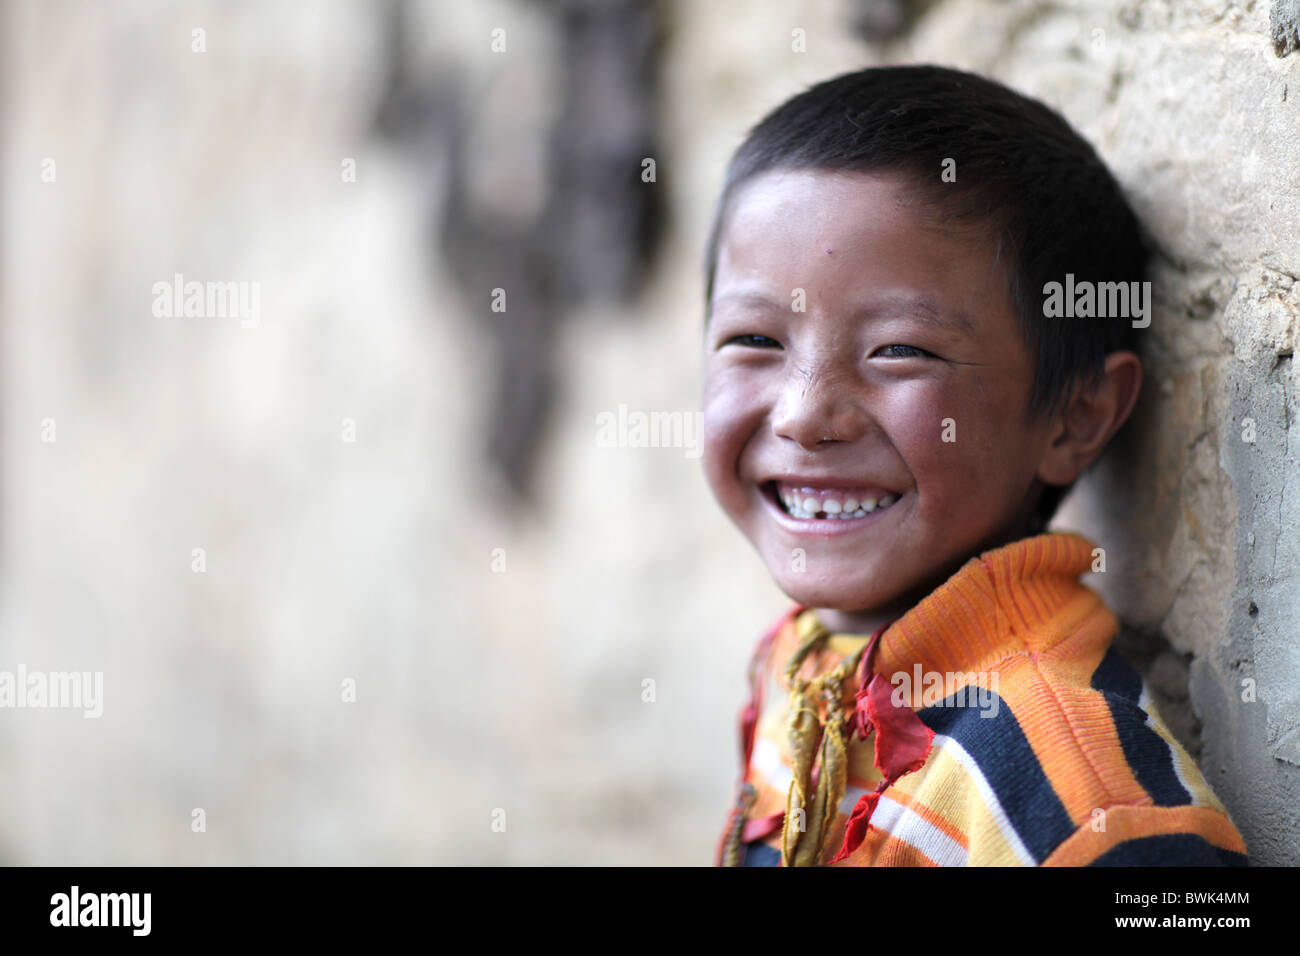 A young tibetan smiling boy in Litang, Sichuan province, southwest China - Stock Image